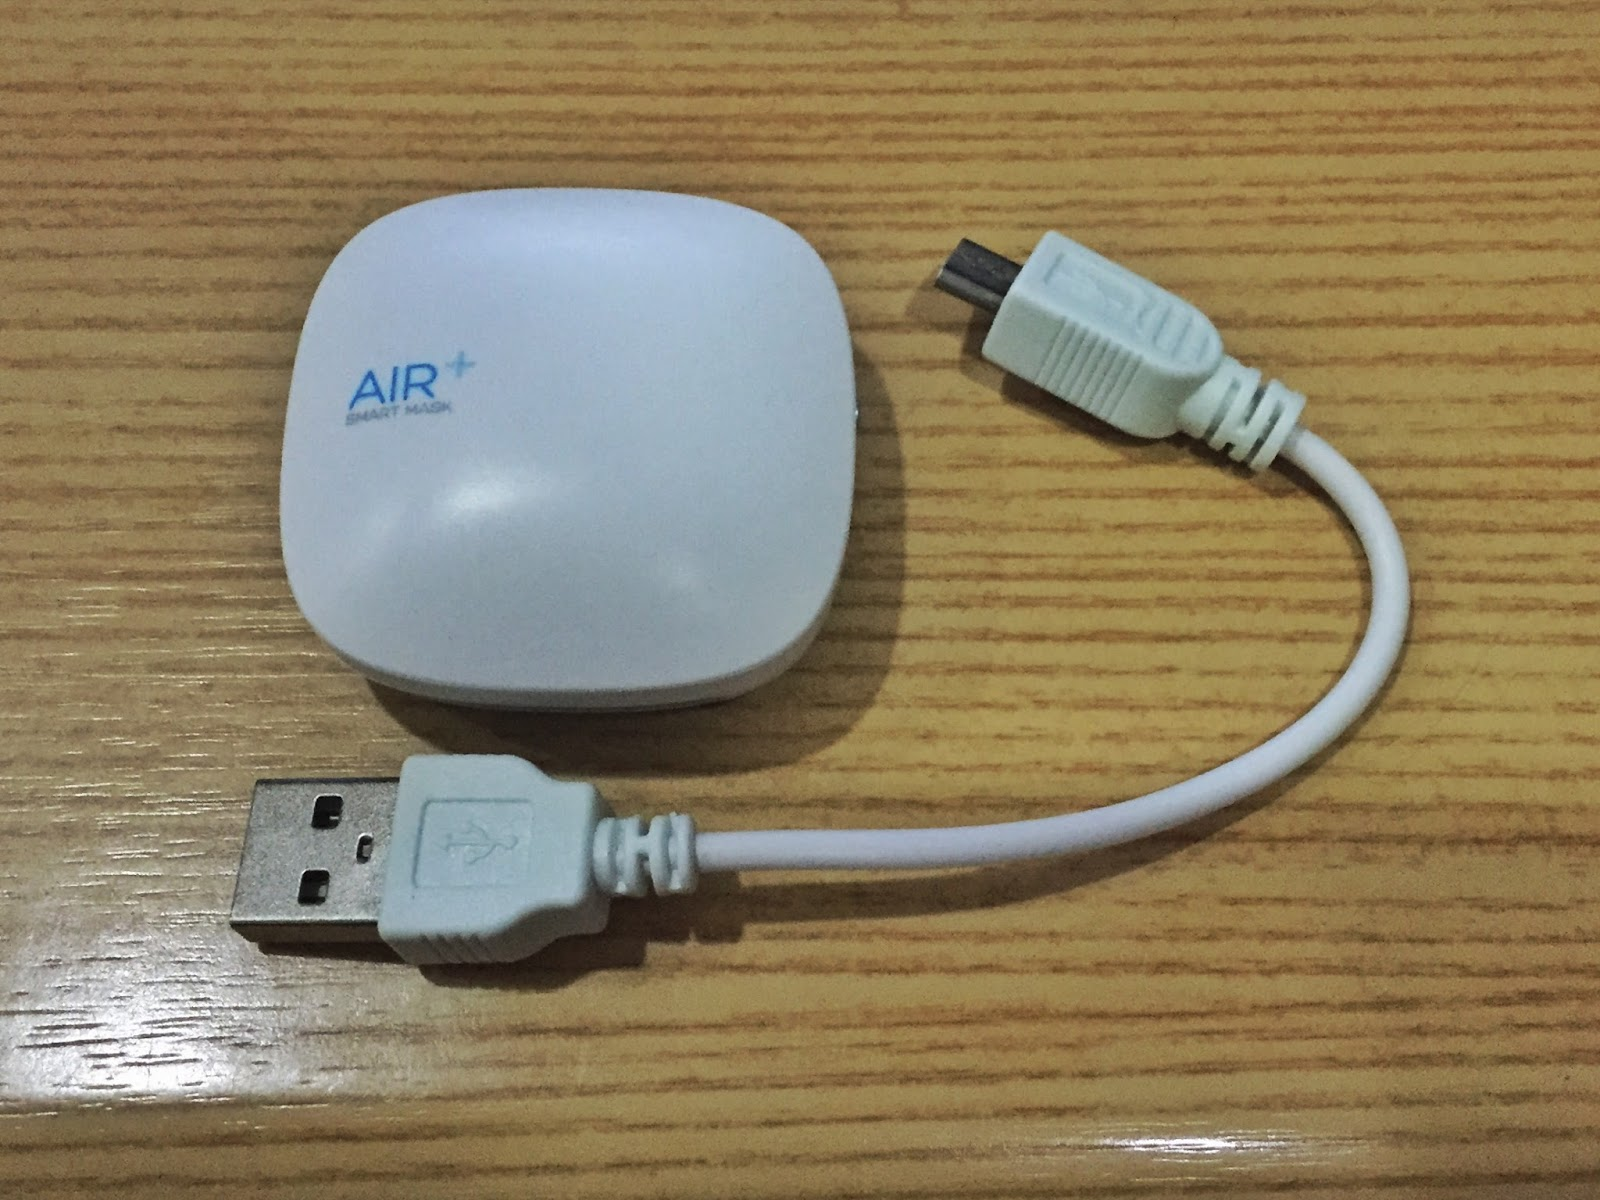 The small and light AIR  micro ventilator and the accompanying USB  #614E30